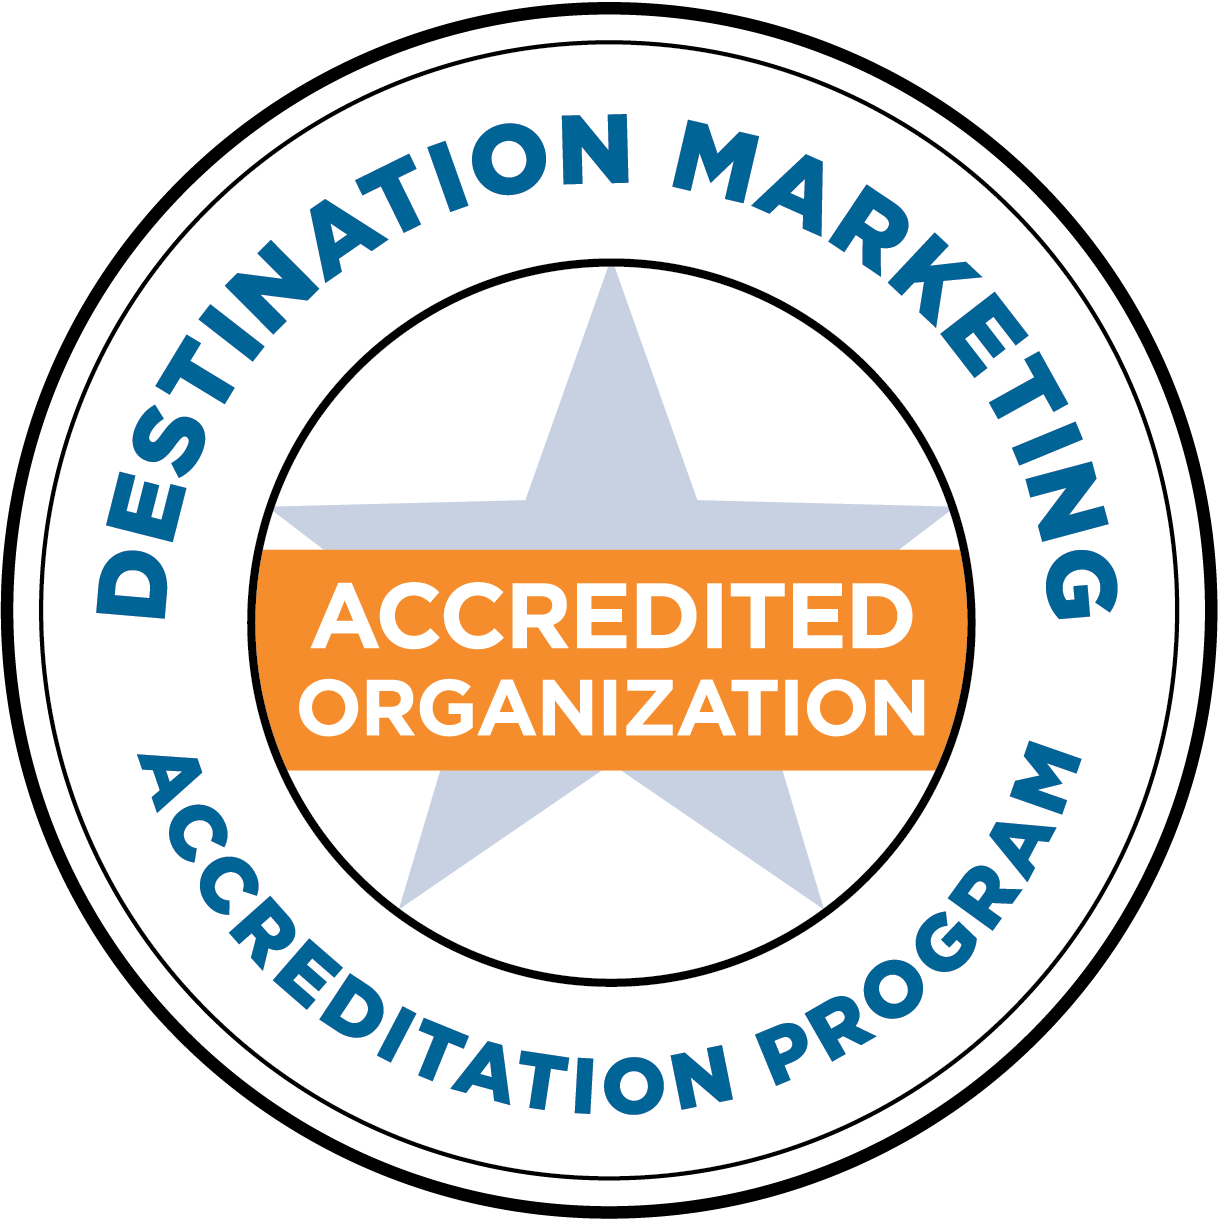 Destination Marketing Accreditation Program Seal for Accredited Organizations